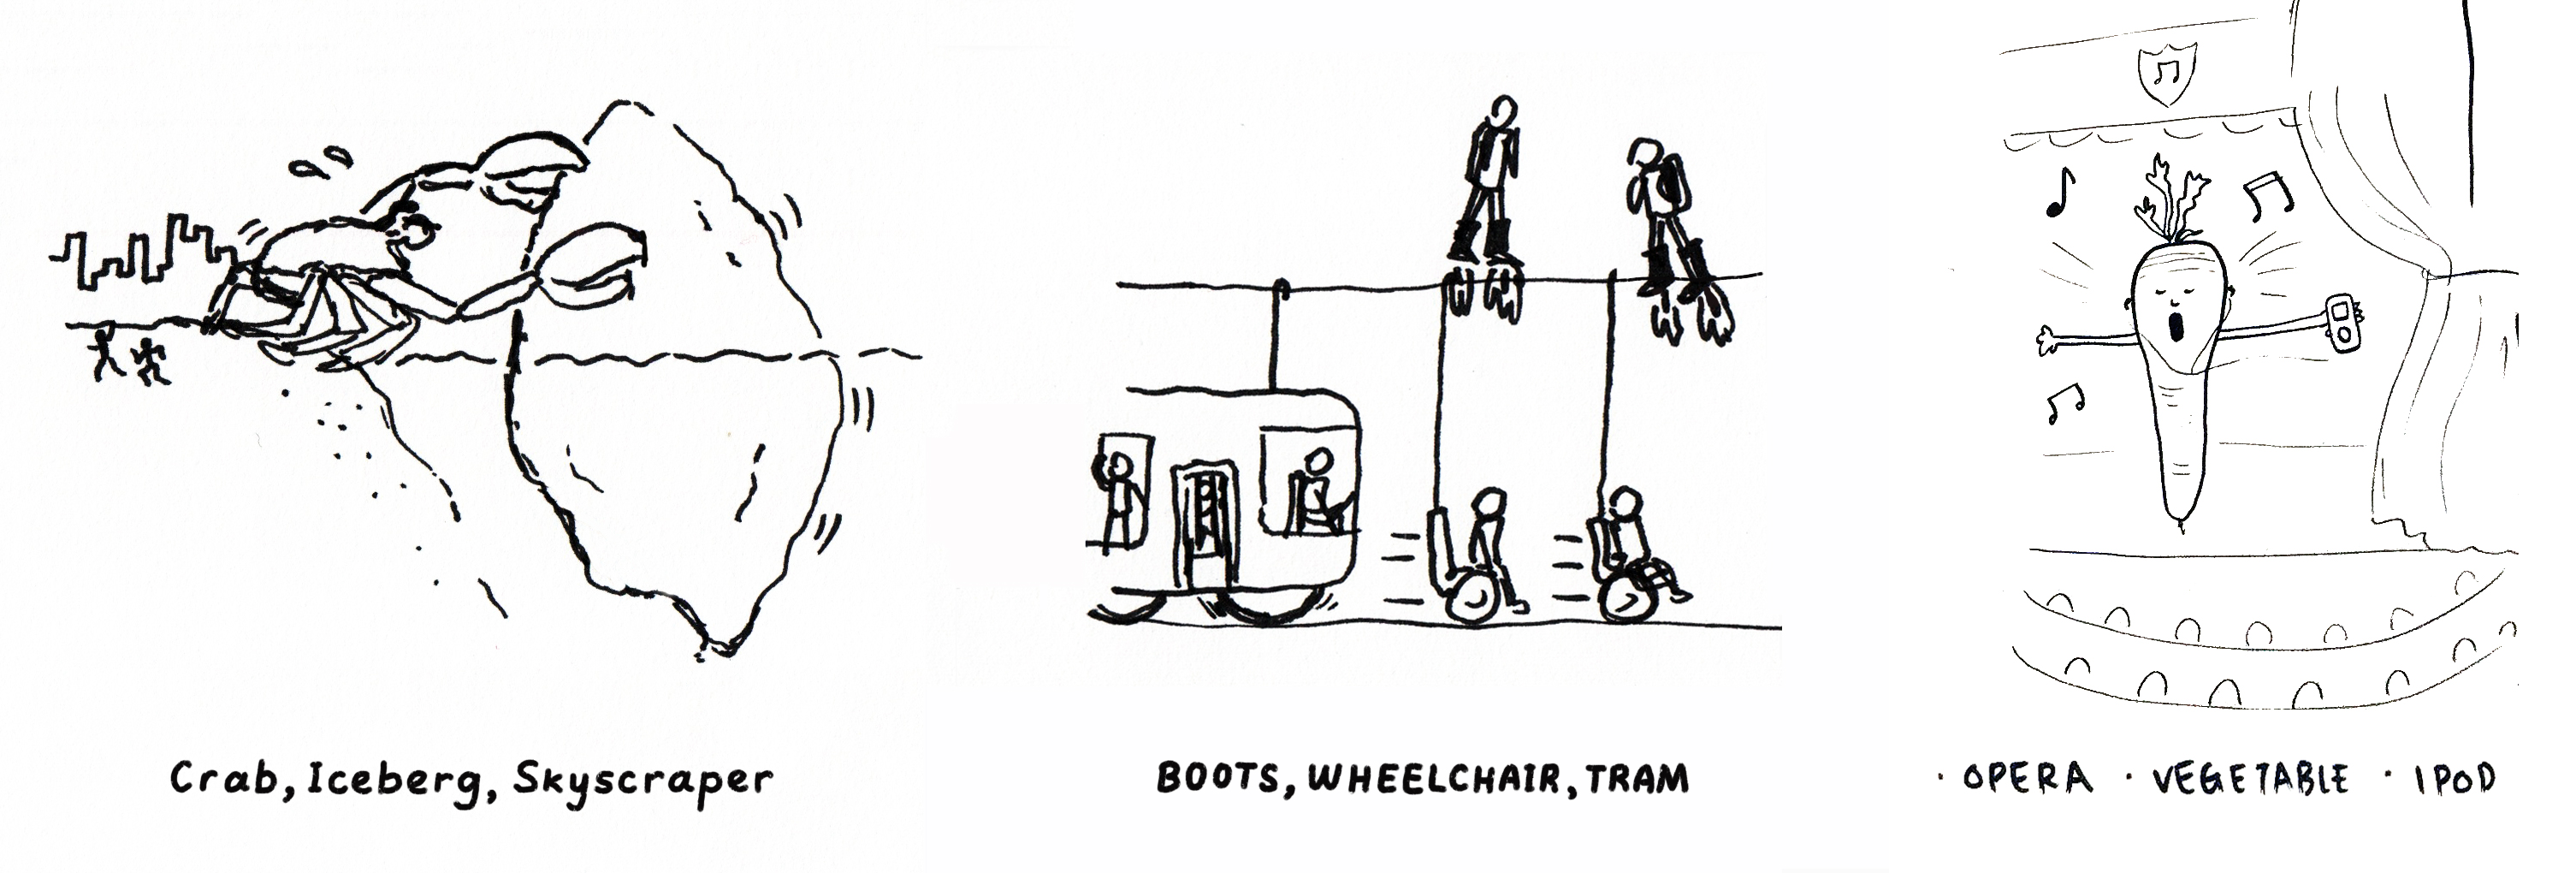 Drawings of scenes containing crab, iceberg, skyscraper, and boots, wheelchair, tram, and opera, vegetable, iPod.